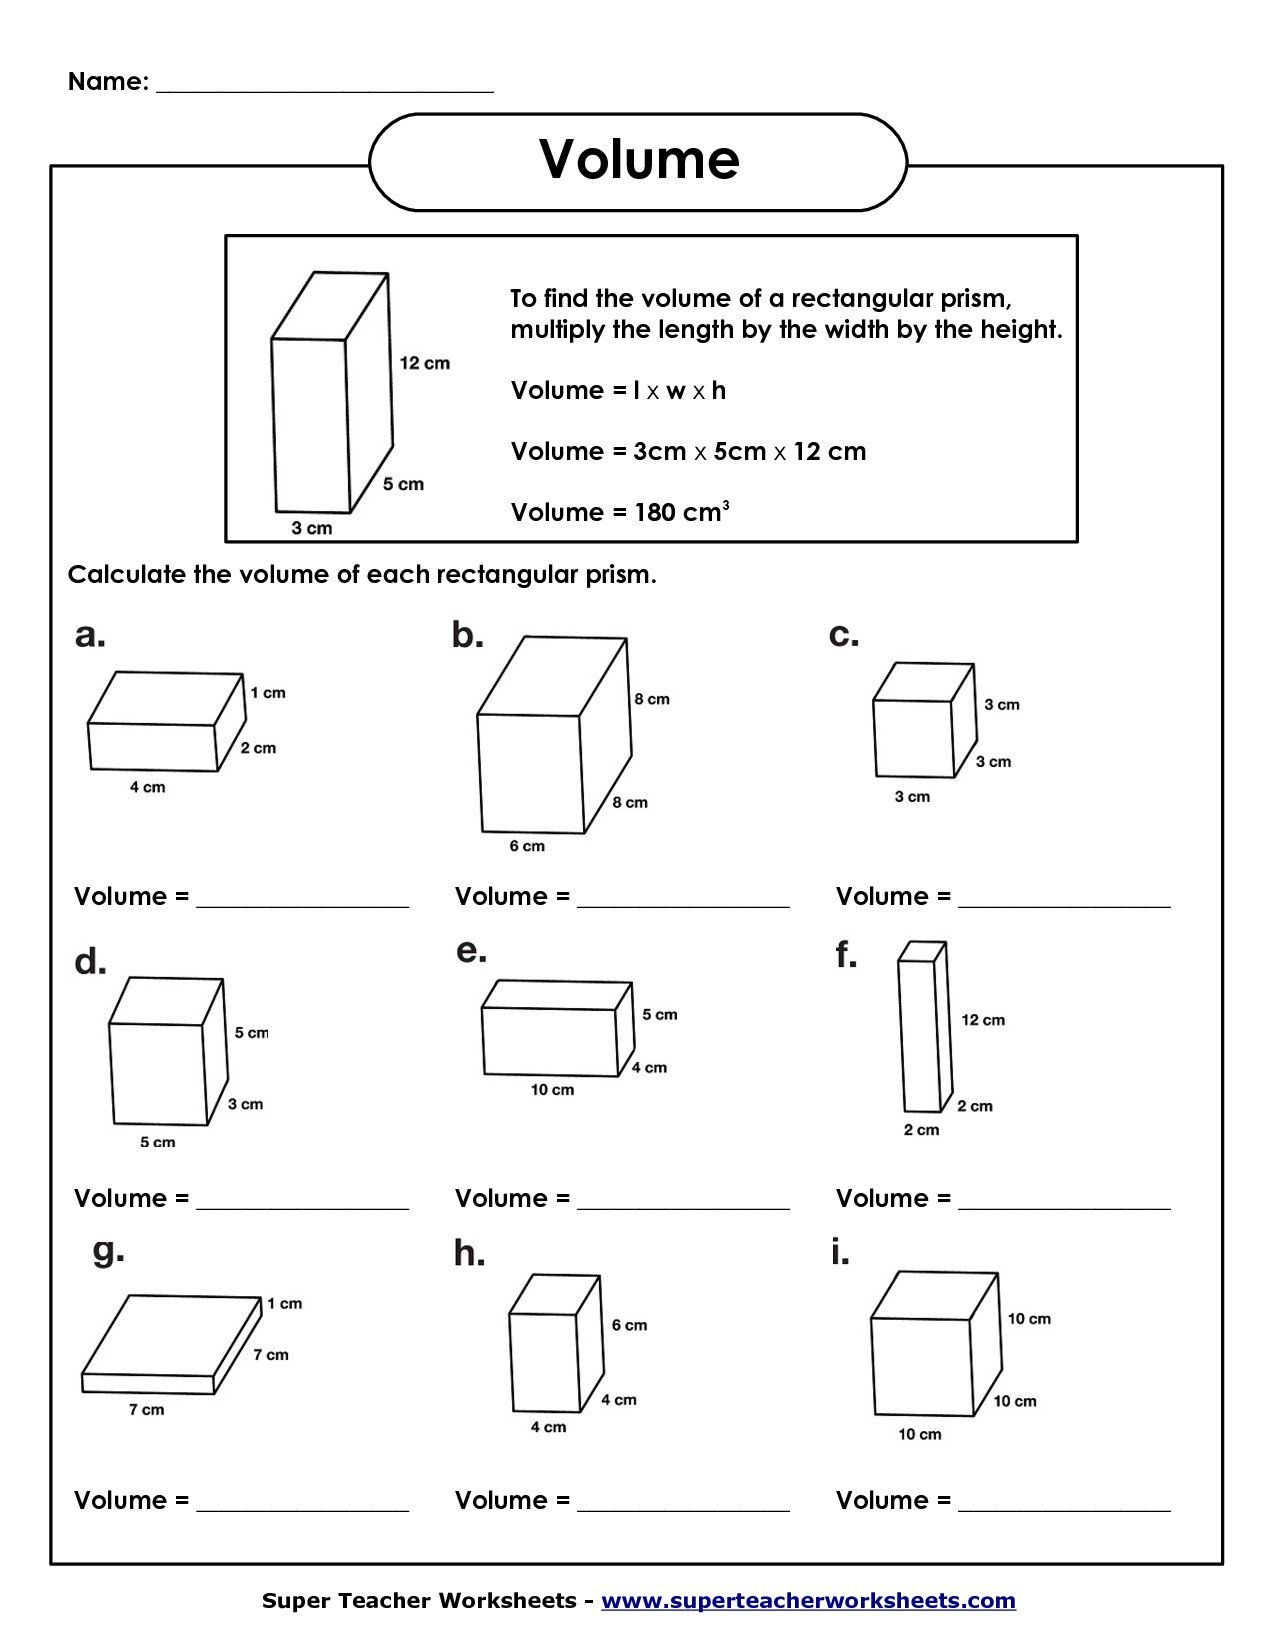 Volume Of Prism Worksheet Rectangular Prism Dimensions